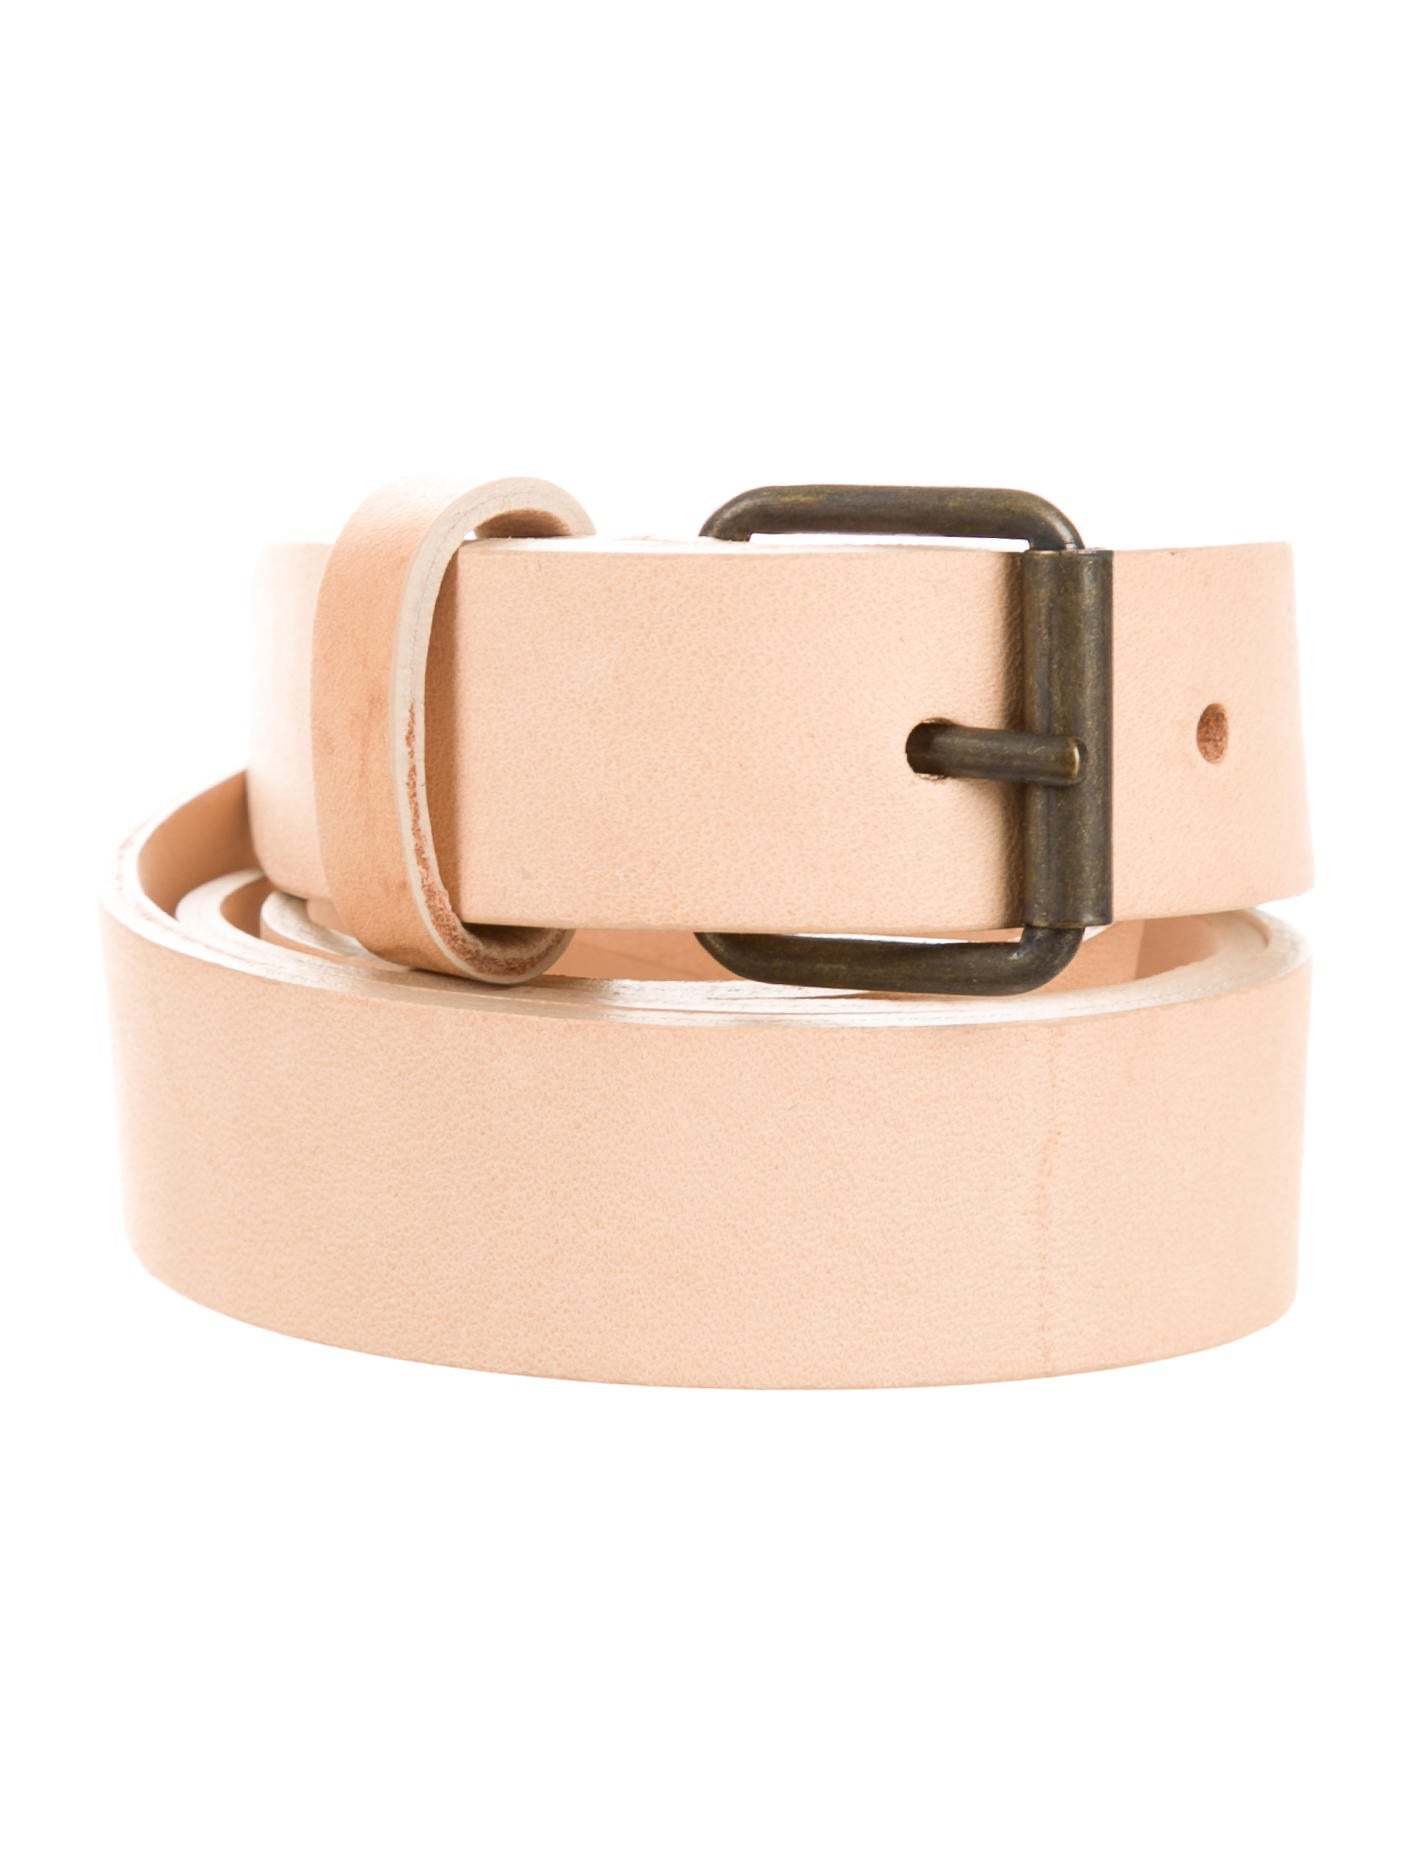 derek lam beige leather belt accessories der28278